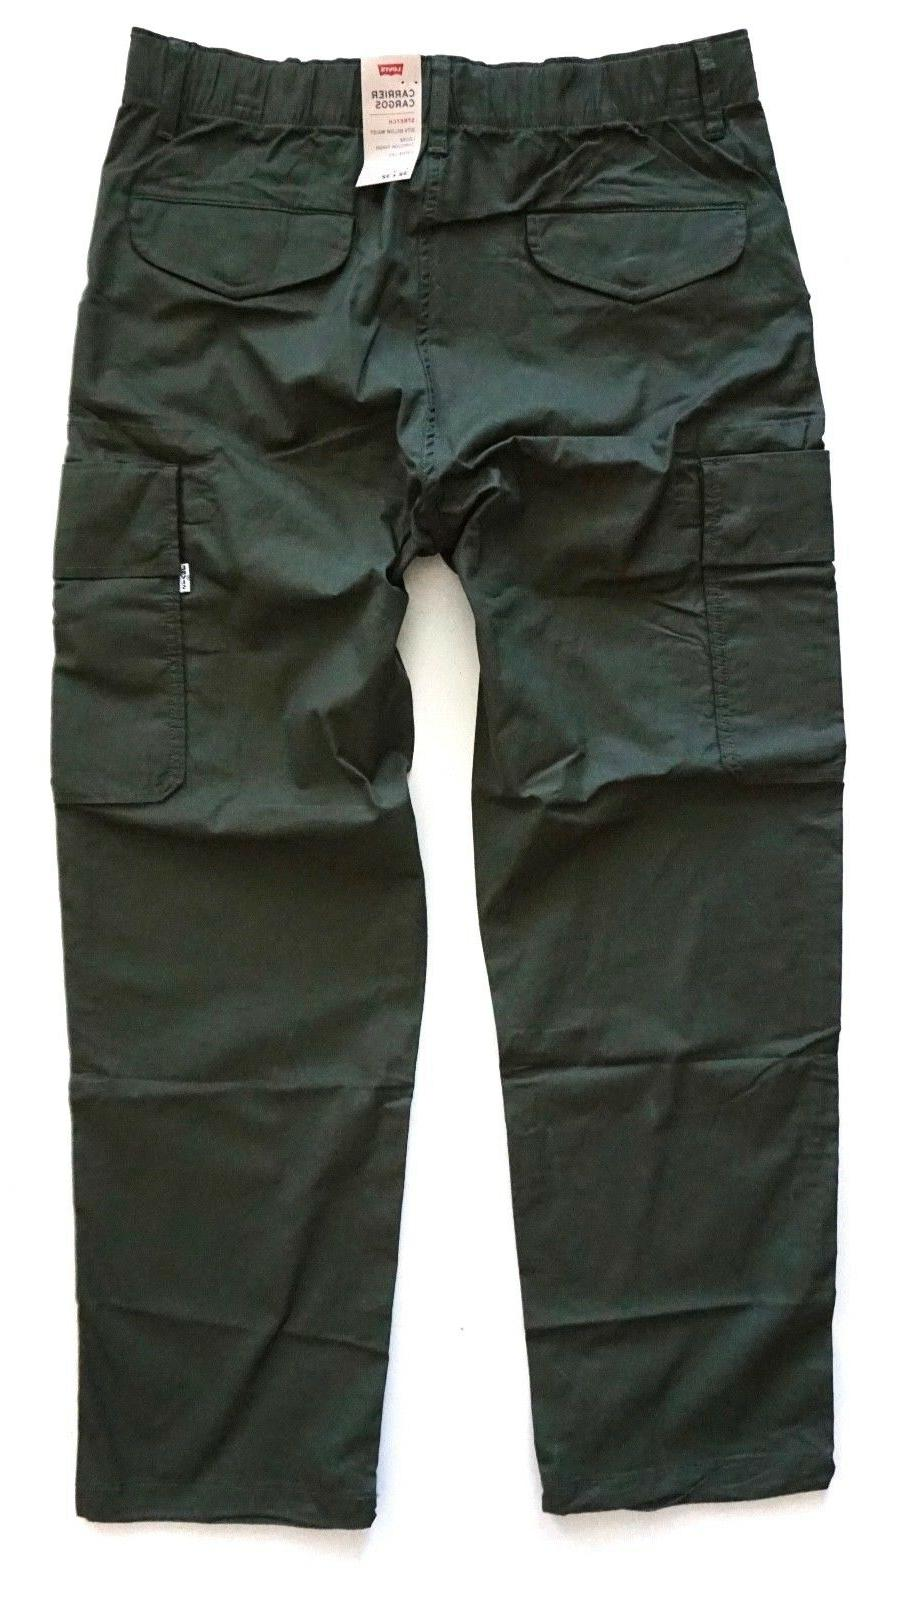 Levi's Green 574190003 Military Carrier